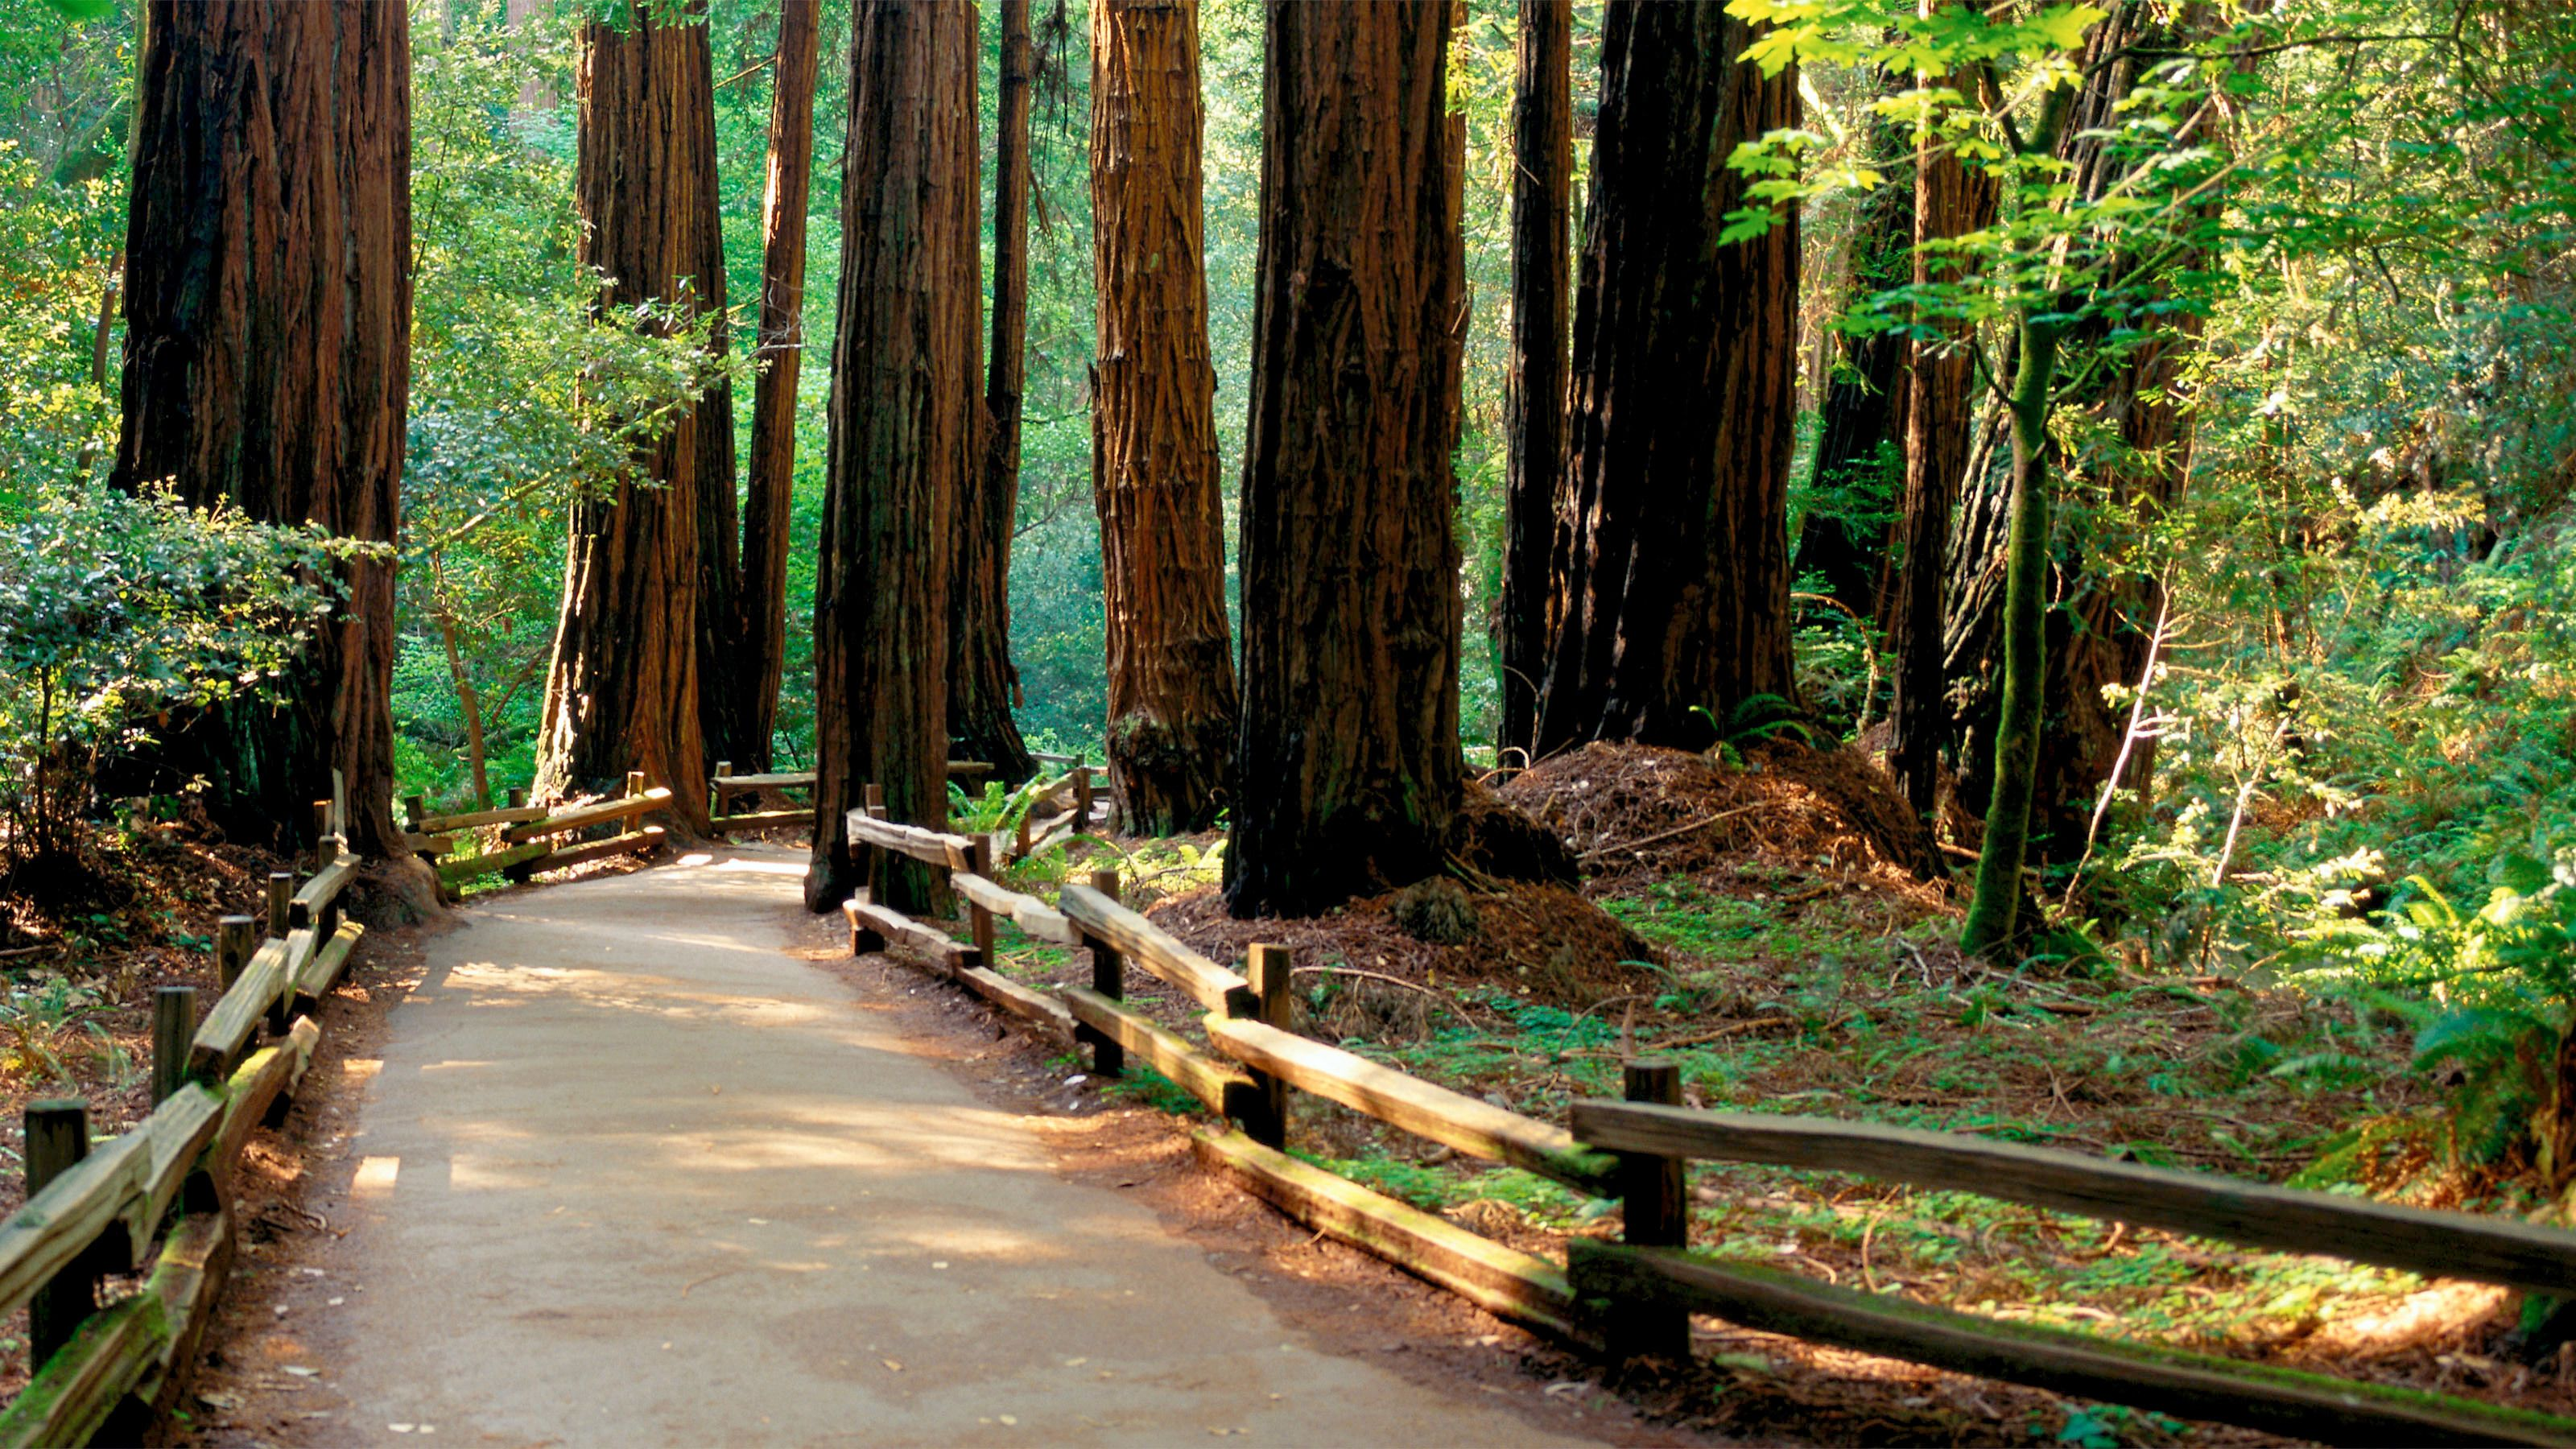 Serene view of the View of the trees at Muir Woods National Monument in San Francisco